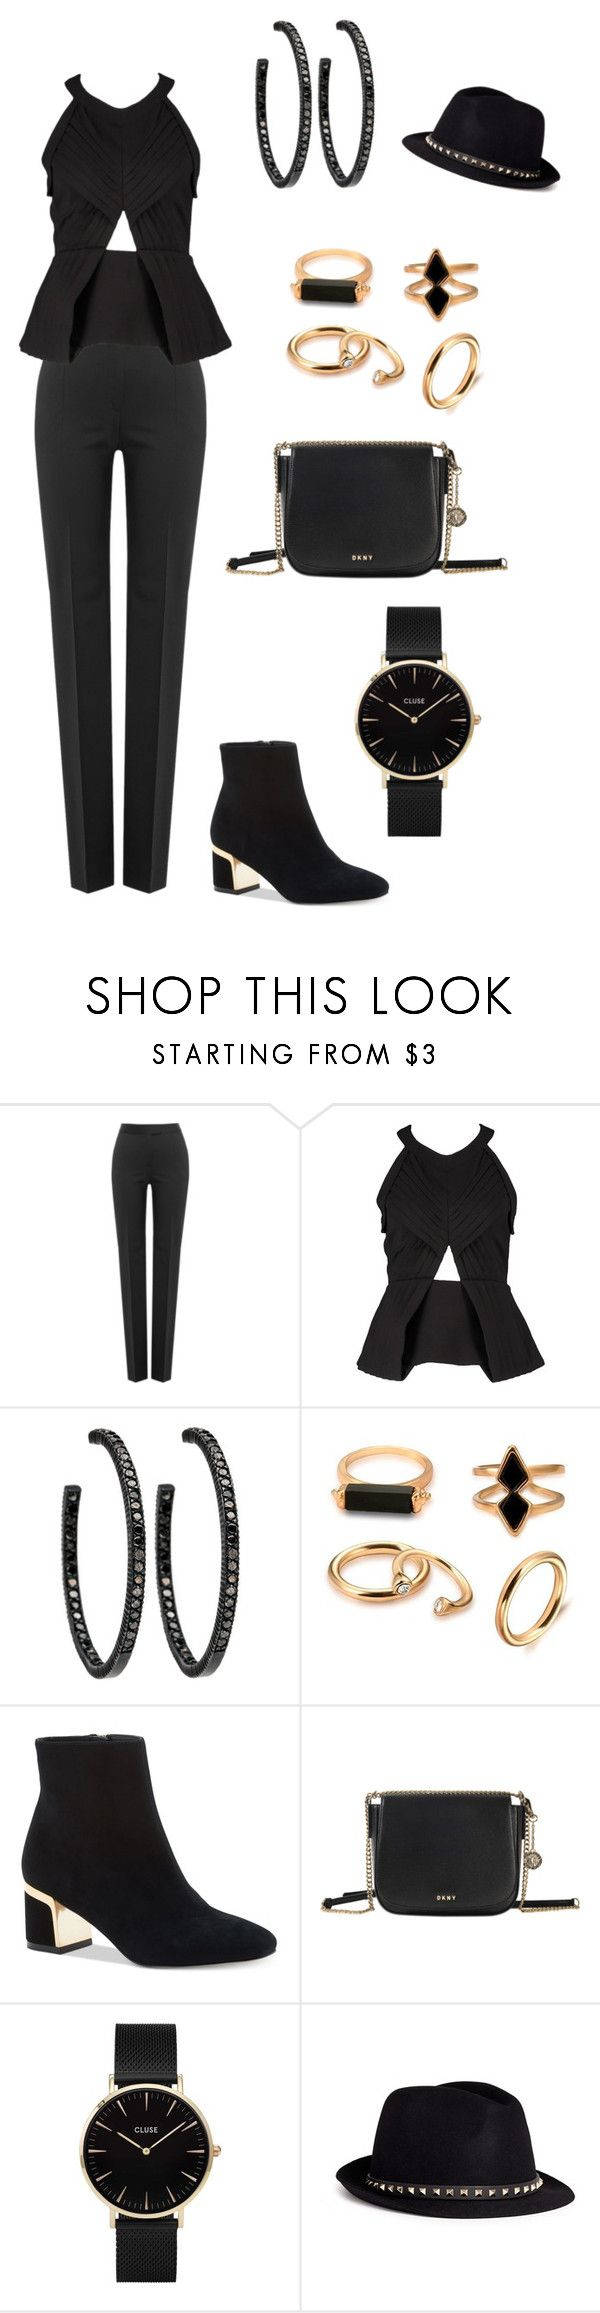 """""""Untitled #850"""" by lilachswan ❤ liked on Polyvore featuring Boutique Moschino, Finders Keepers, DKNY, CLUSE and Valentino"""